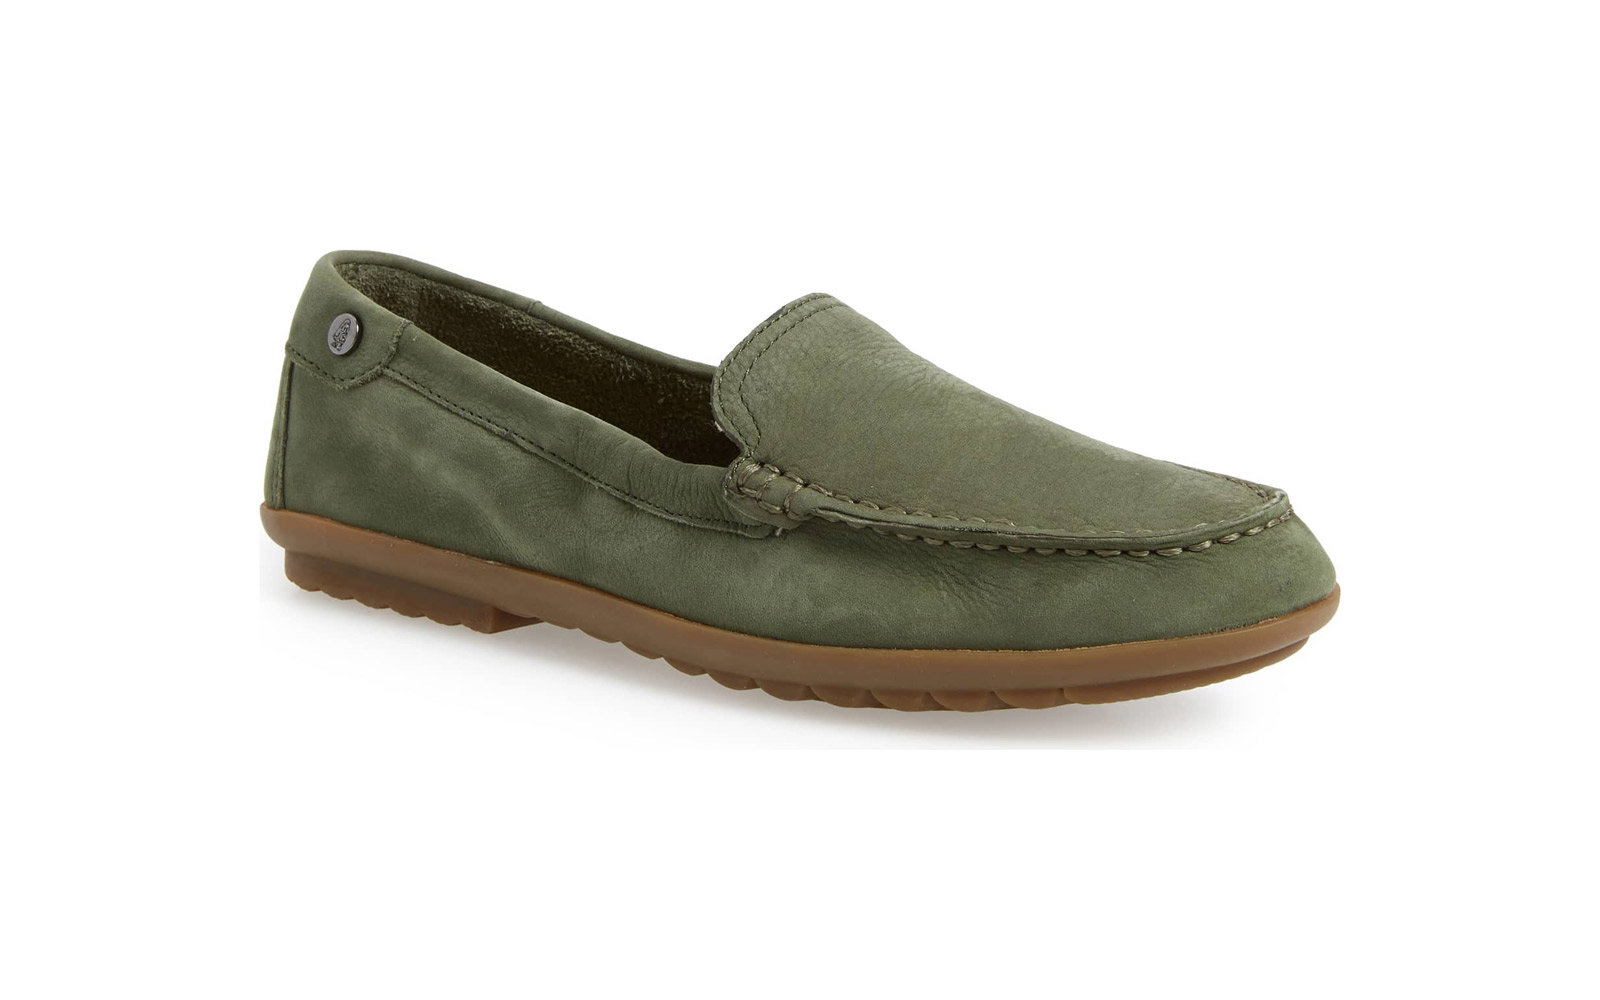 231dc312a104 Hush Puppies  Adi  Moc Toe Loafers. hush puppies arch support shoes for  women. Courtesy of Nordstrom